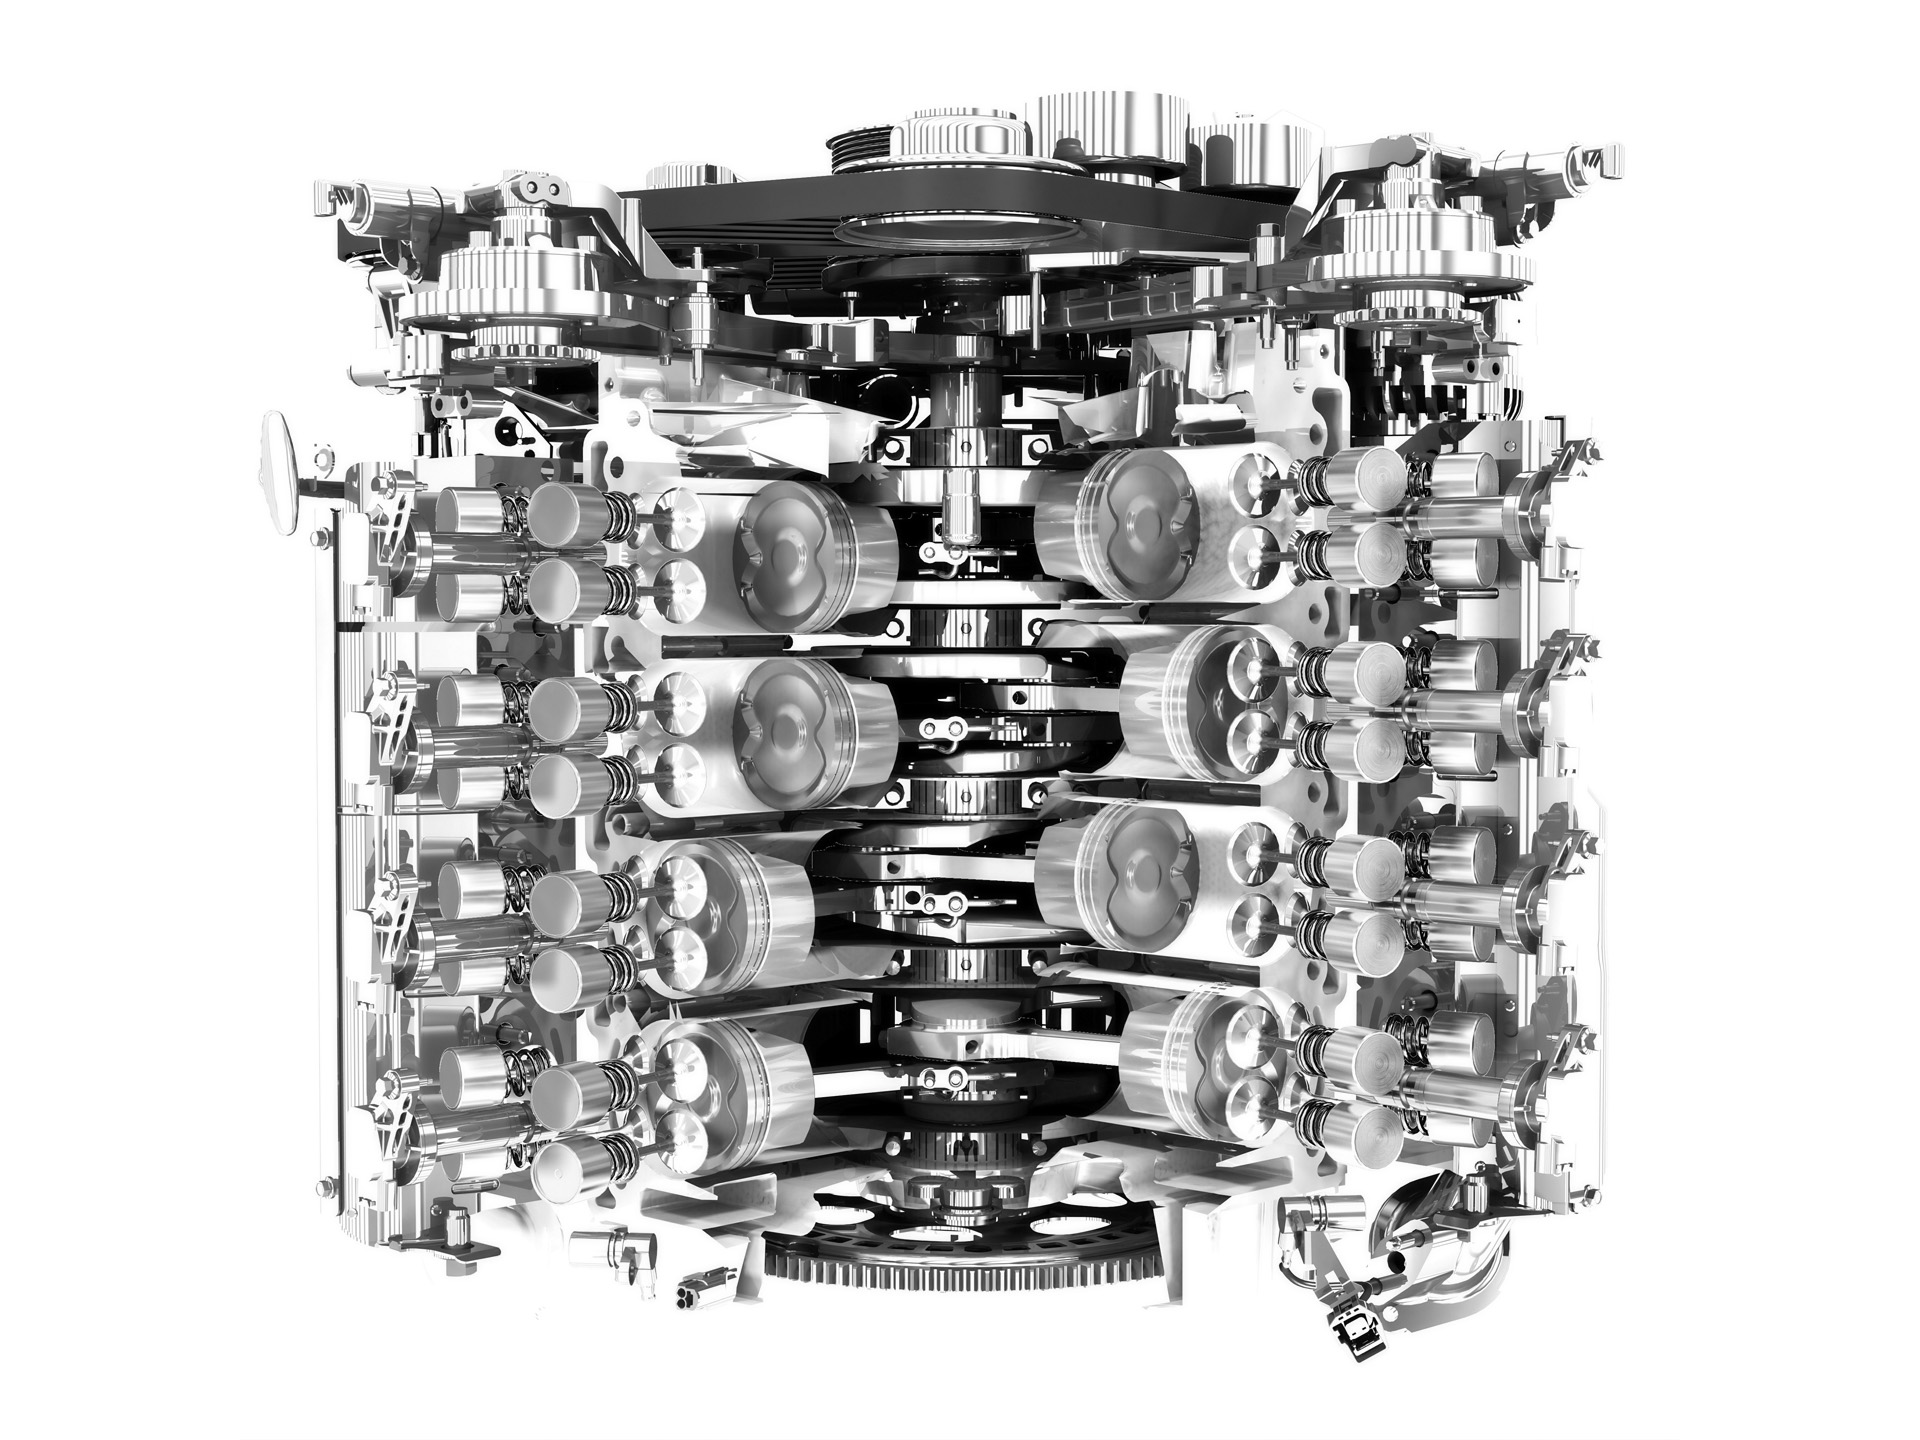 Sample P0107 Engine